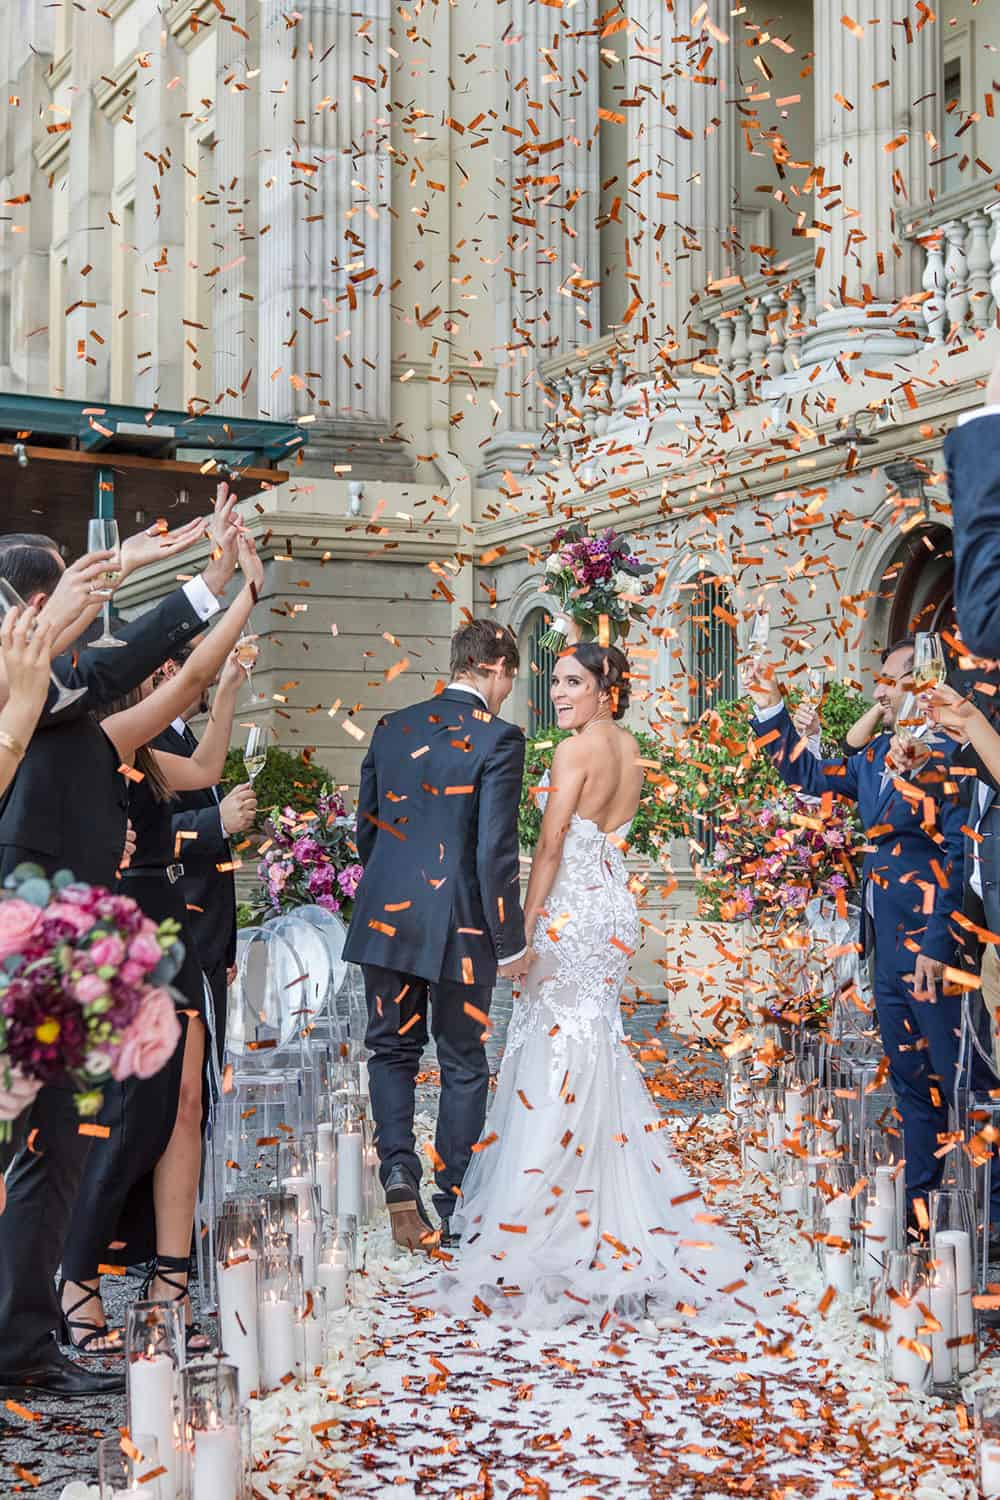 Bride and groom with confetti at Customs House.